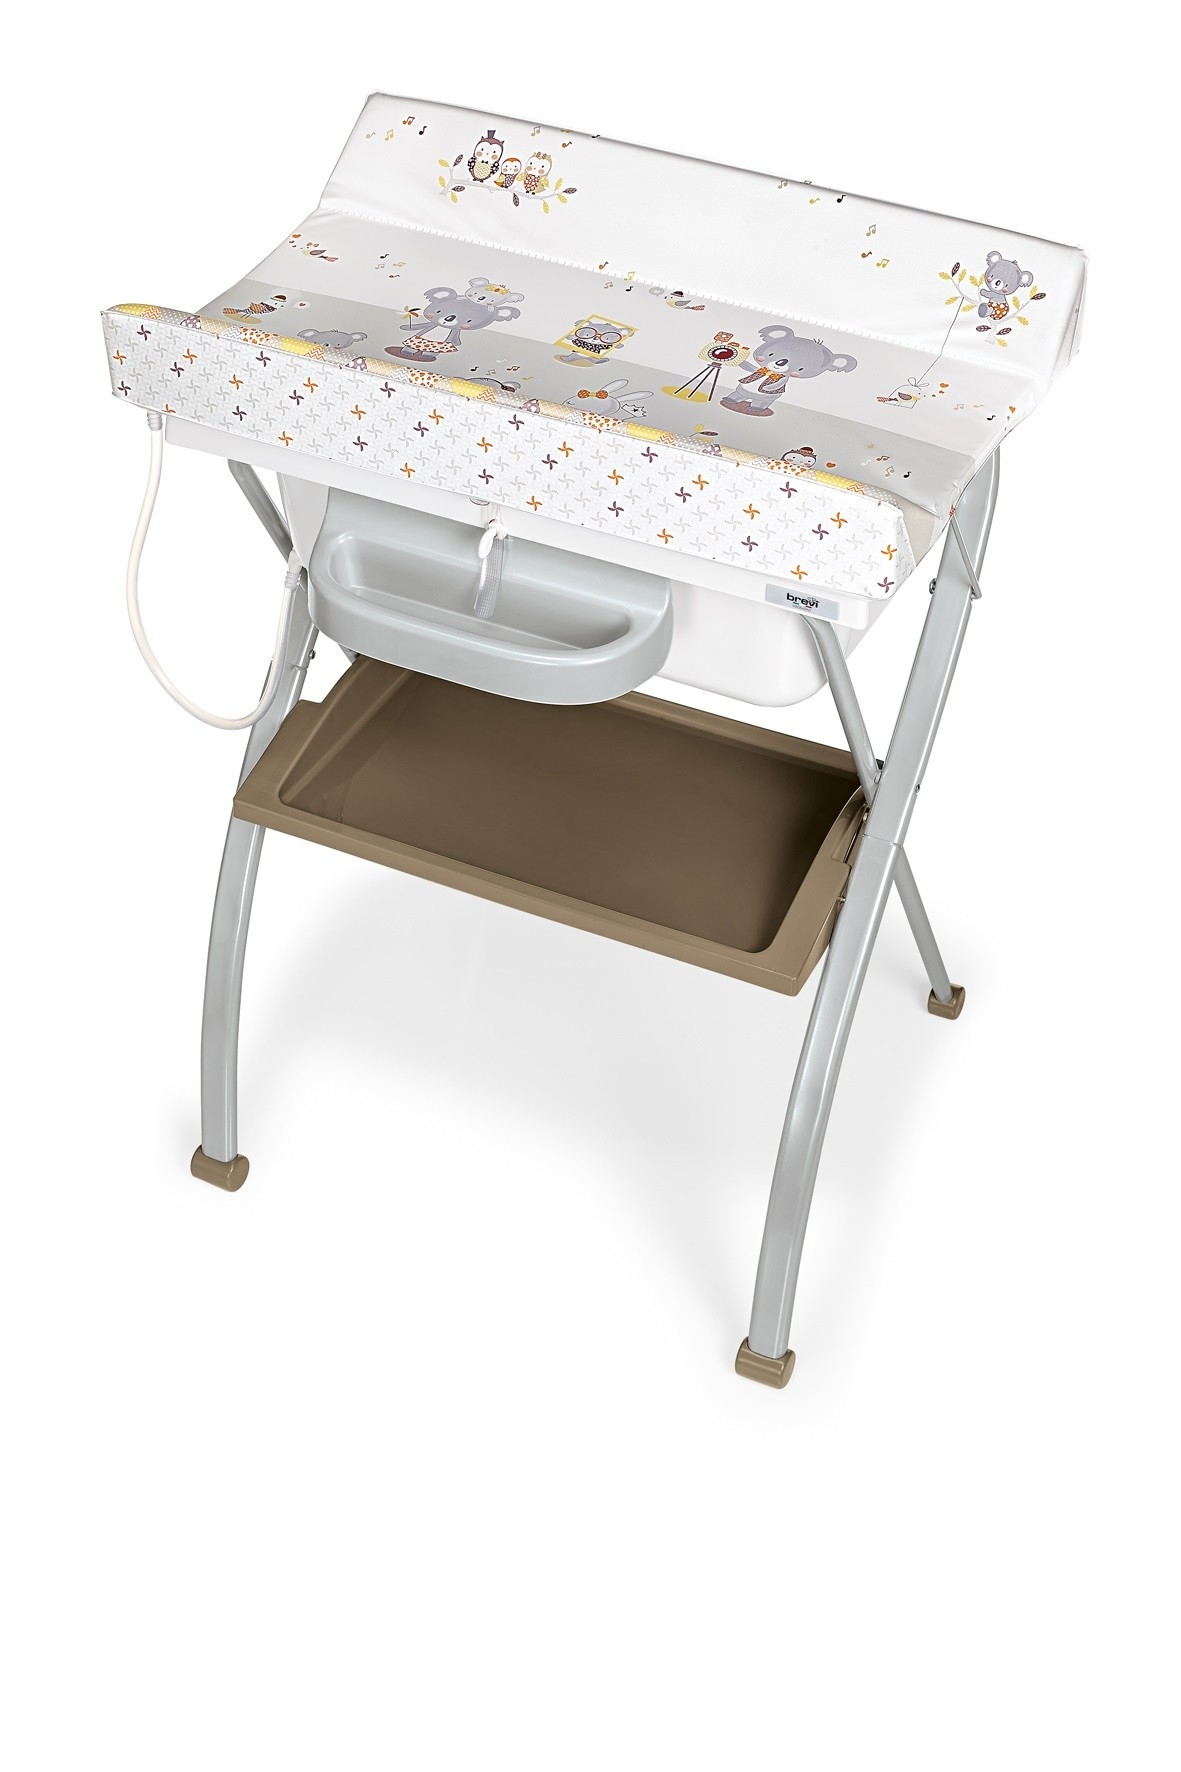 Lindo Nappy Changer Inc Bath col 671